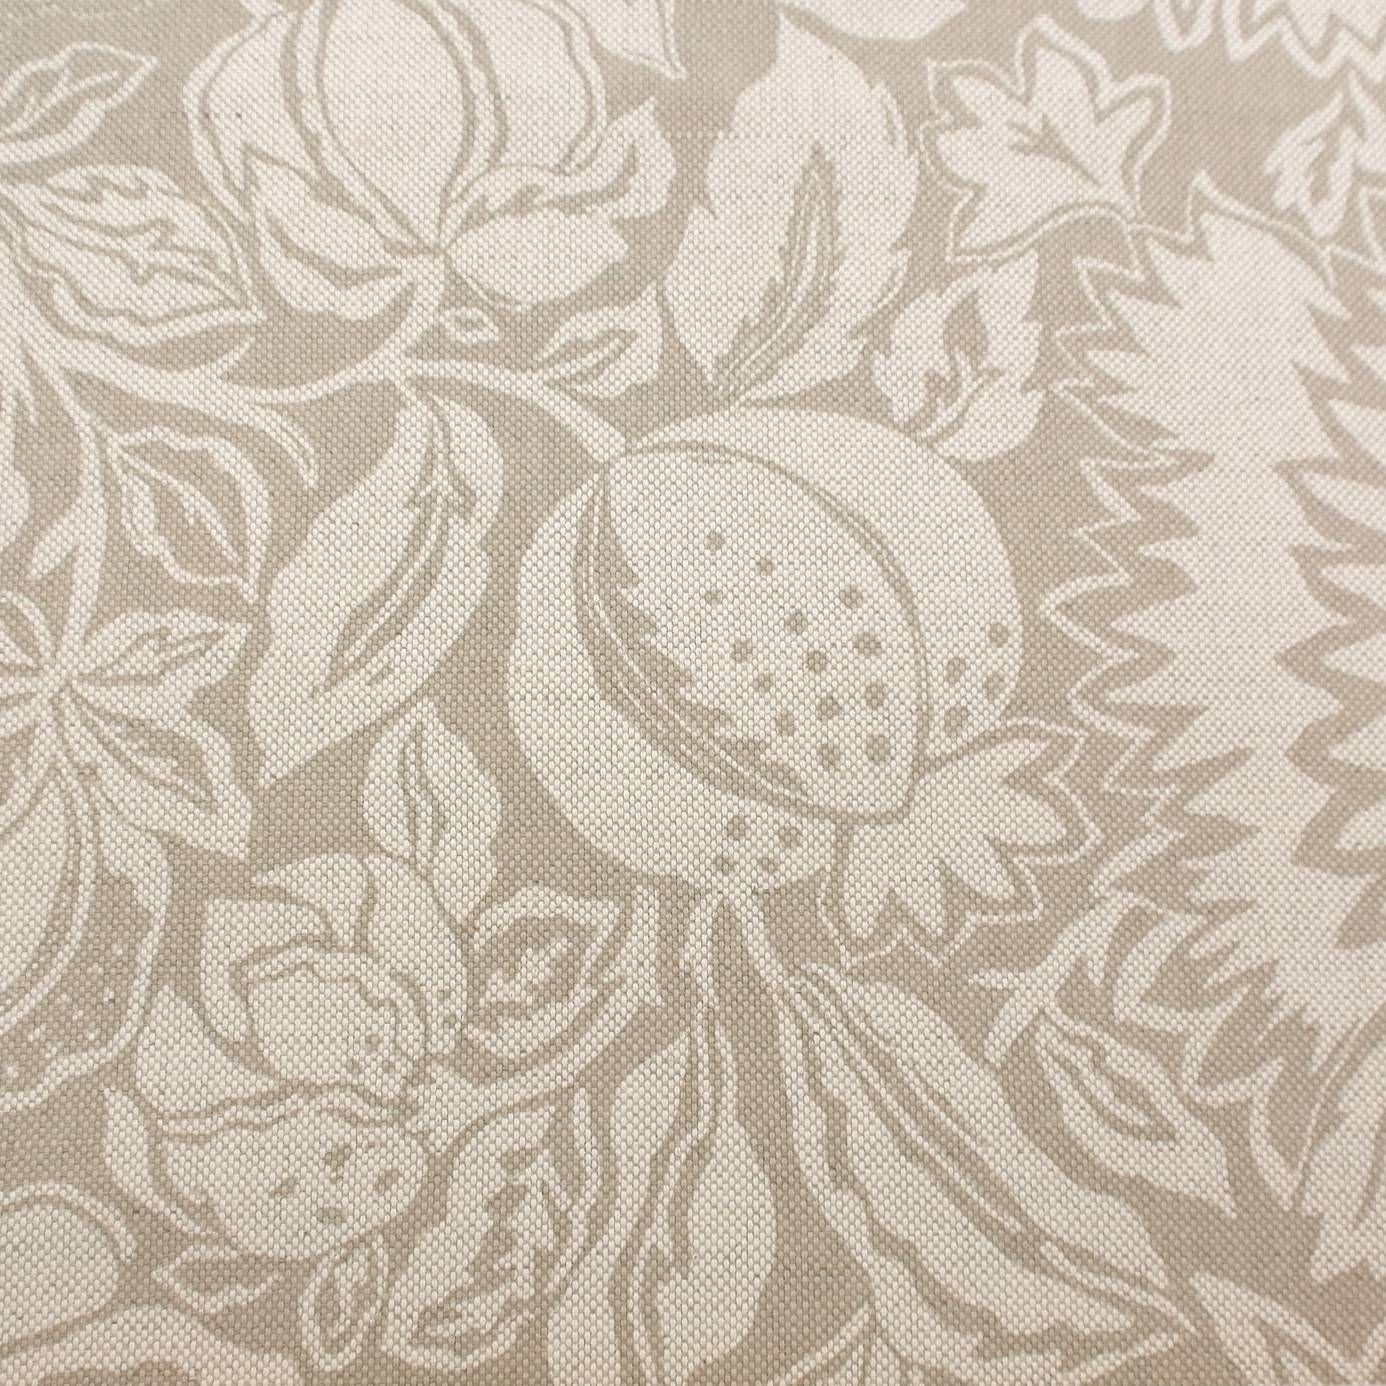 Sanderson Poppy Damask Fabric Linen Natural Product Code